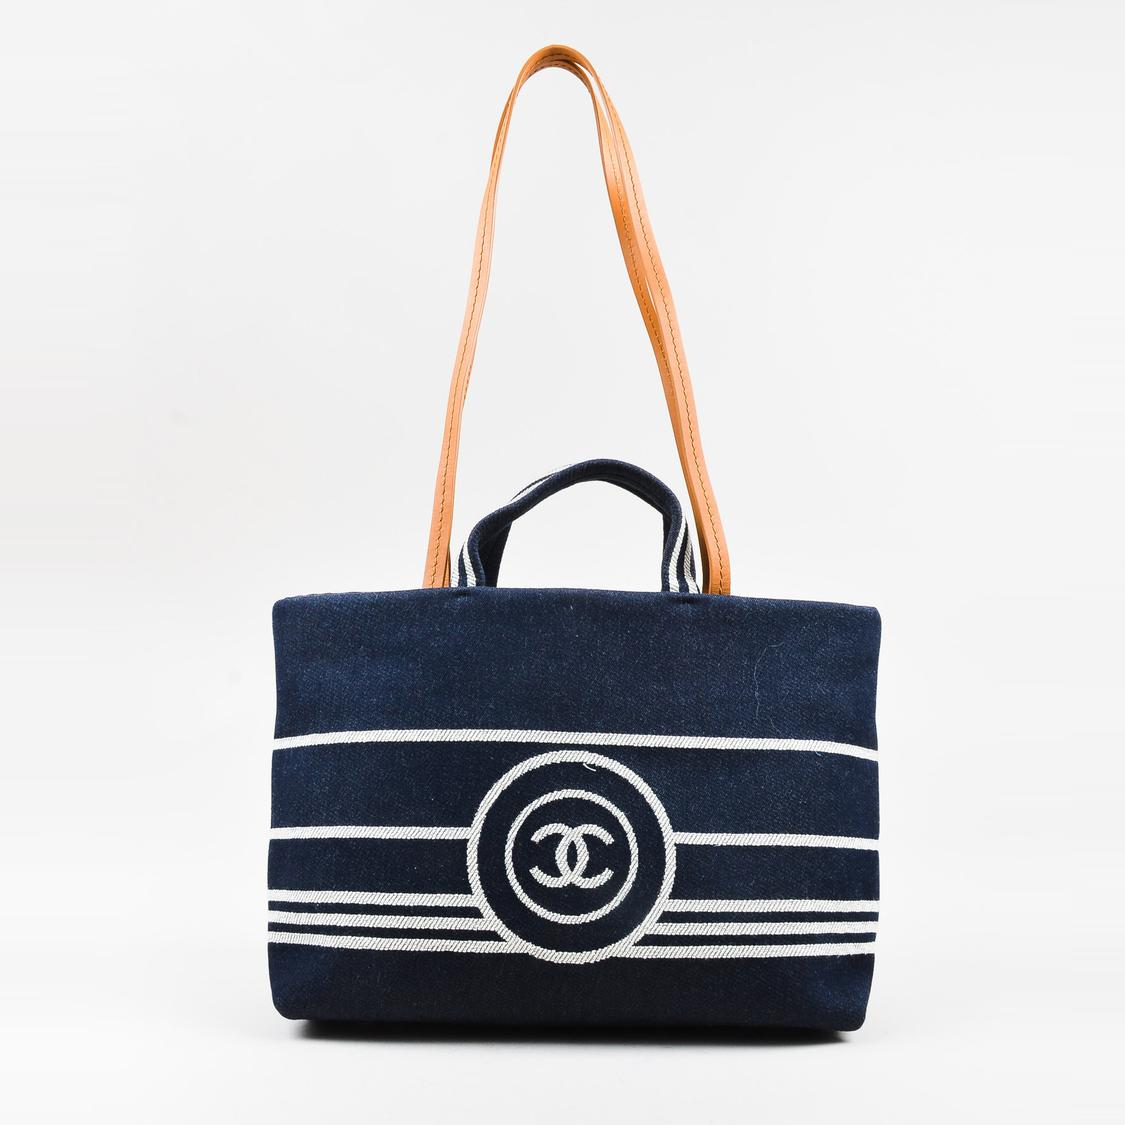 324d9bfd3f15 Chanel $2000 Blue White Denim Tan Leather Striped Tote Bag in Blue ...